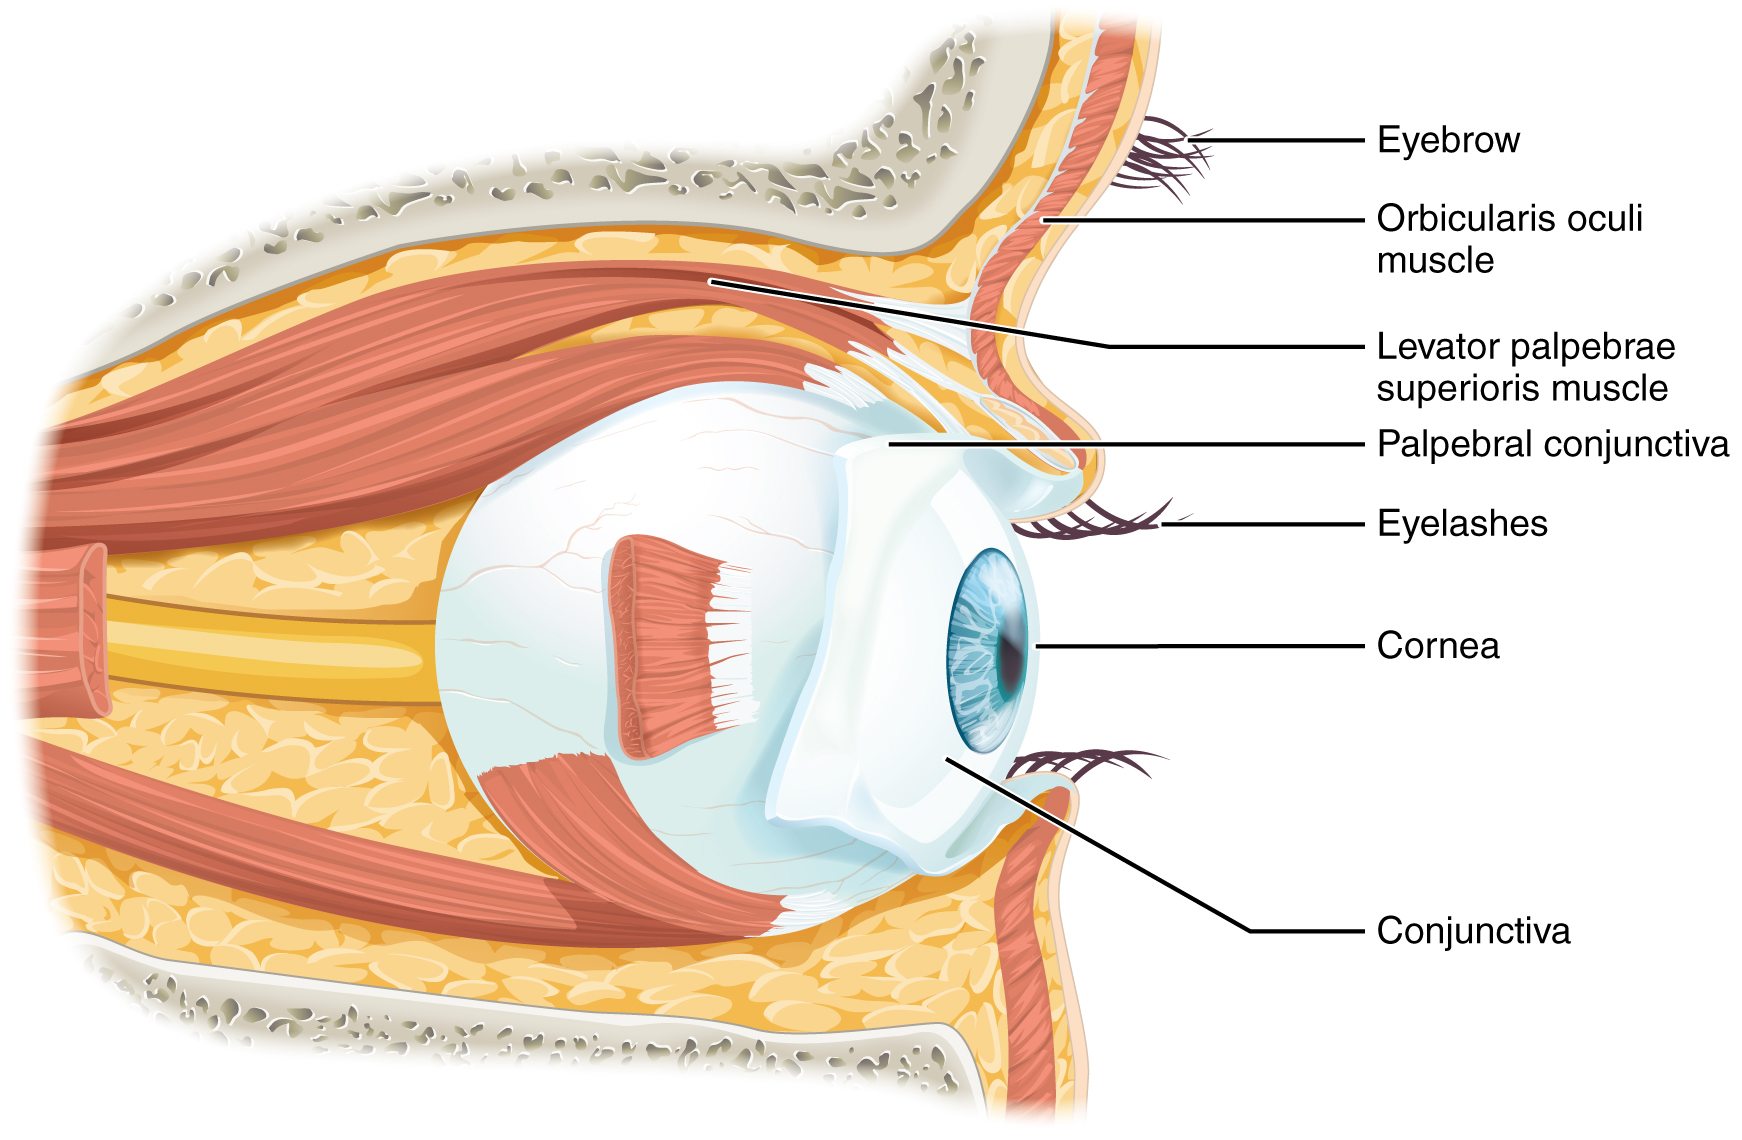 141 Sensory Perception Anatomy And Physiology Simple Human Eye Diagram How Our Eyes Work This Shows The Lateral View Of Major Parts Are Labeled